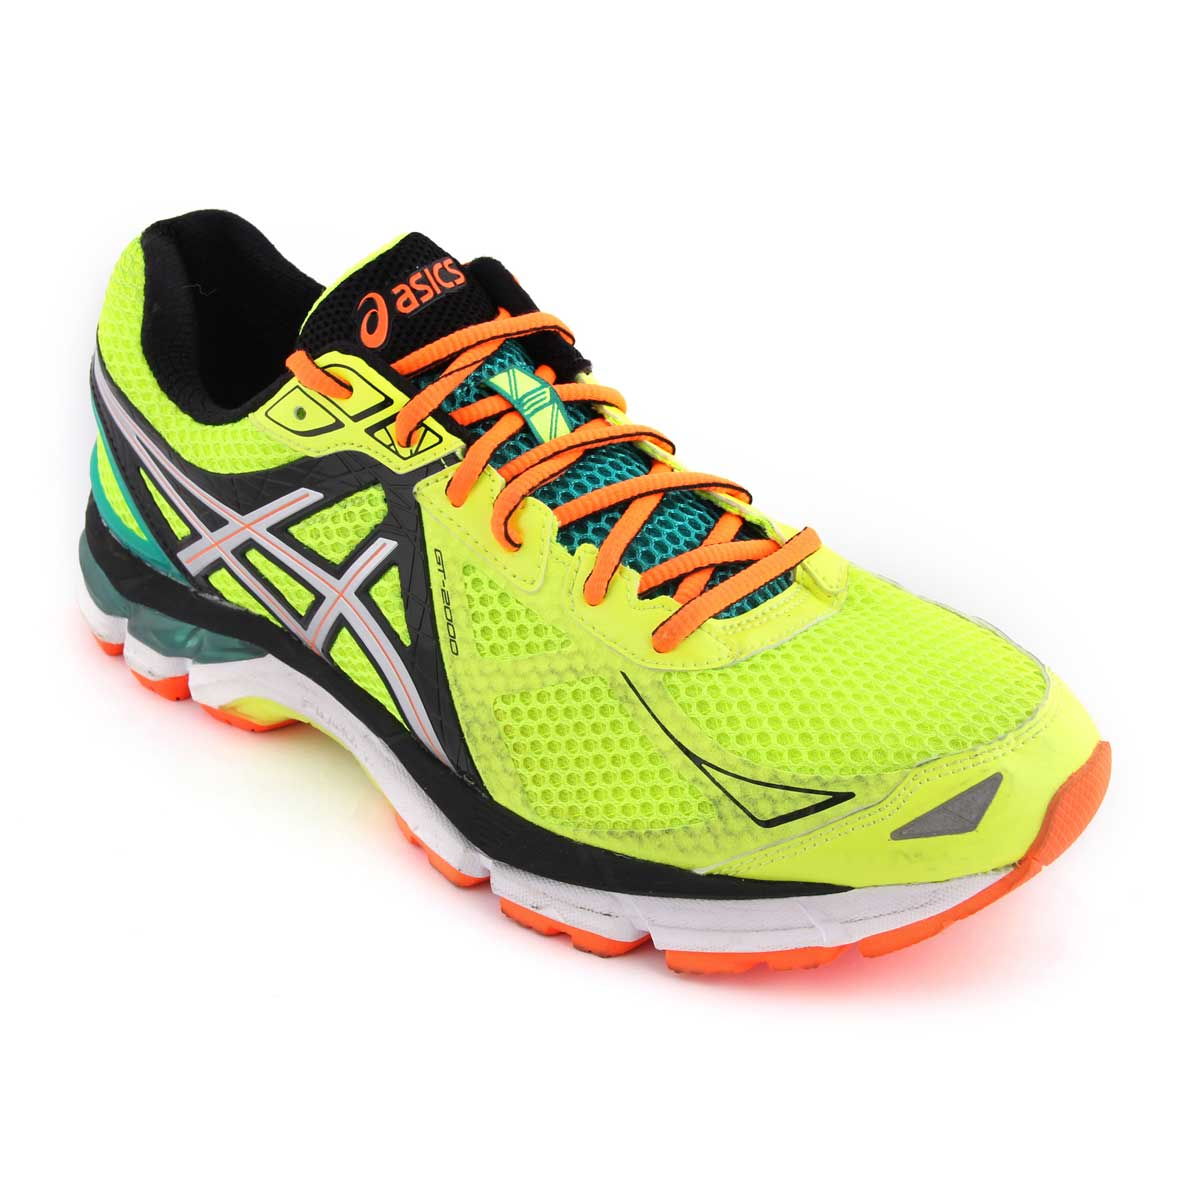 Running Shoes, Running, Buy, Asics, Asics GT-2000 3 Running Shoes (Flash  Yellow)